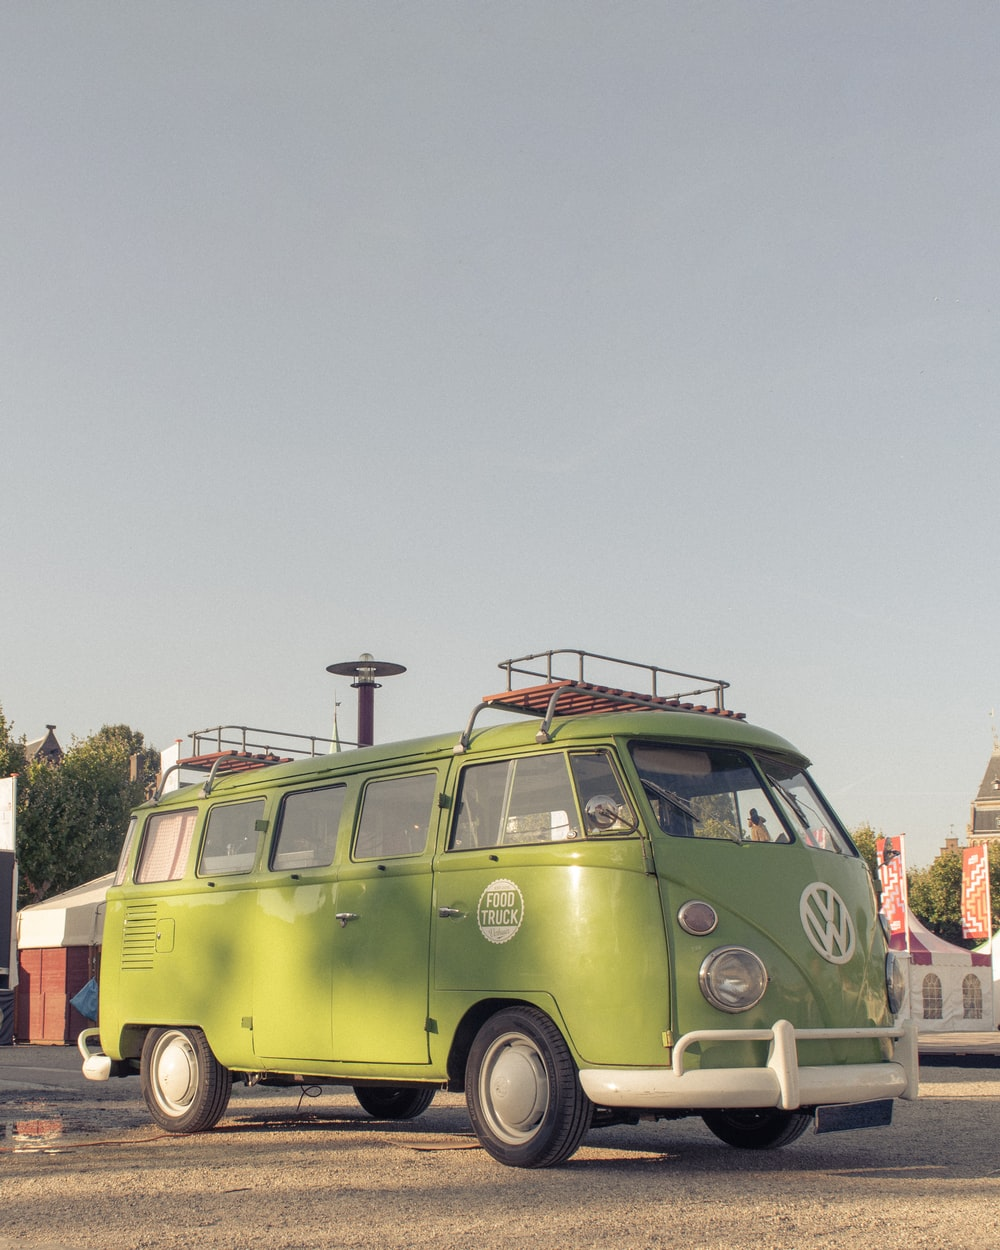 green volkswagen t-2 van parked on gray concrete road during daytime